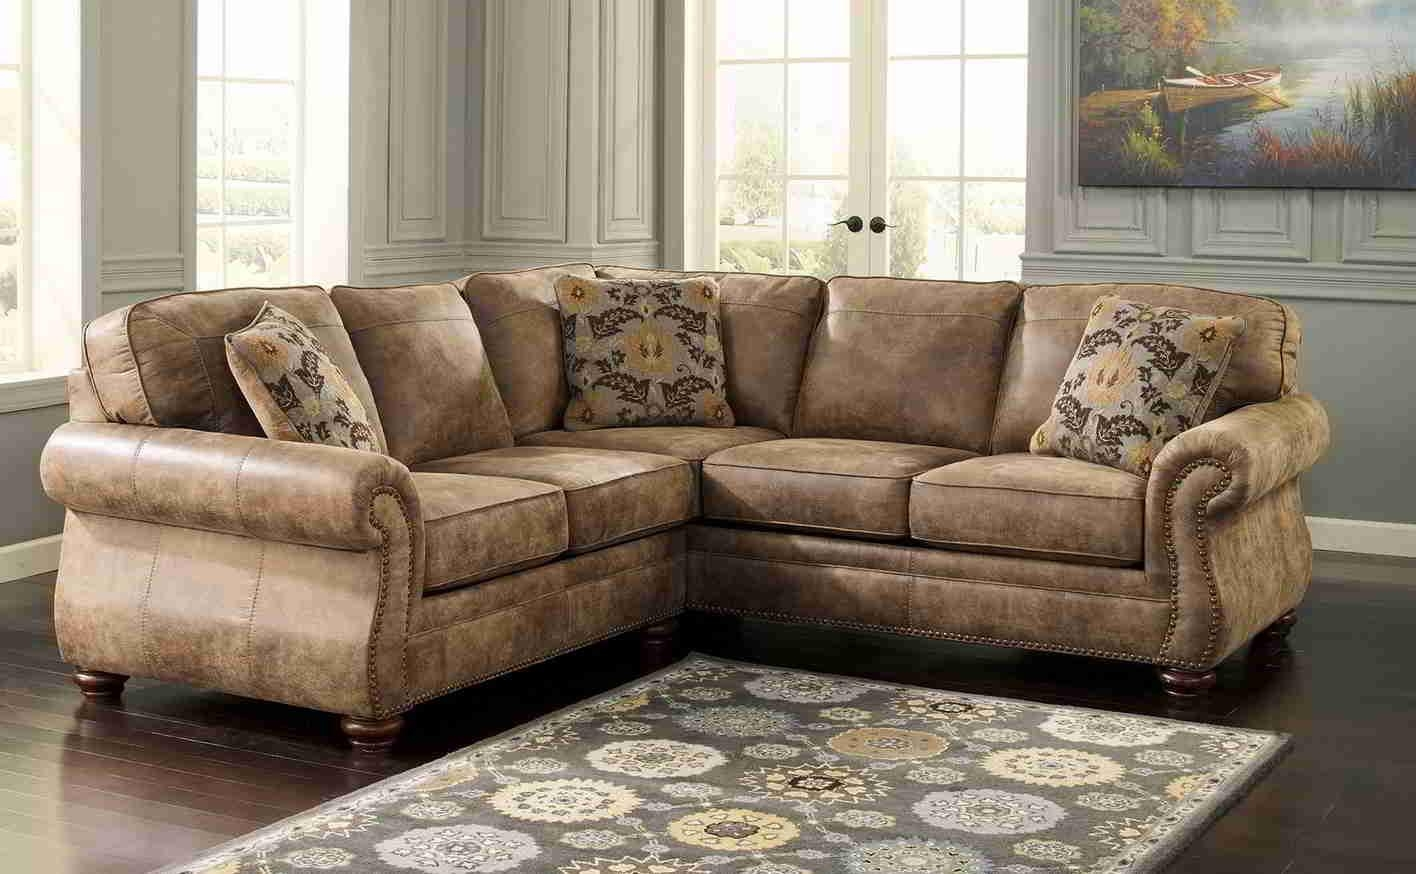 Sofas Center : Best Wide Seat Sectional Sofas About Remodel High Intended For Wide Seat Sectional Sofas (View 3 of 20)